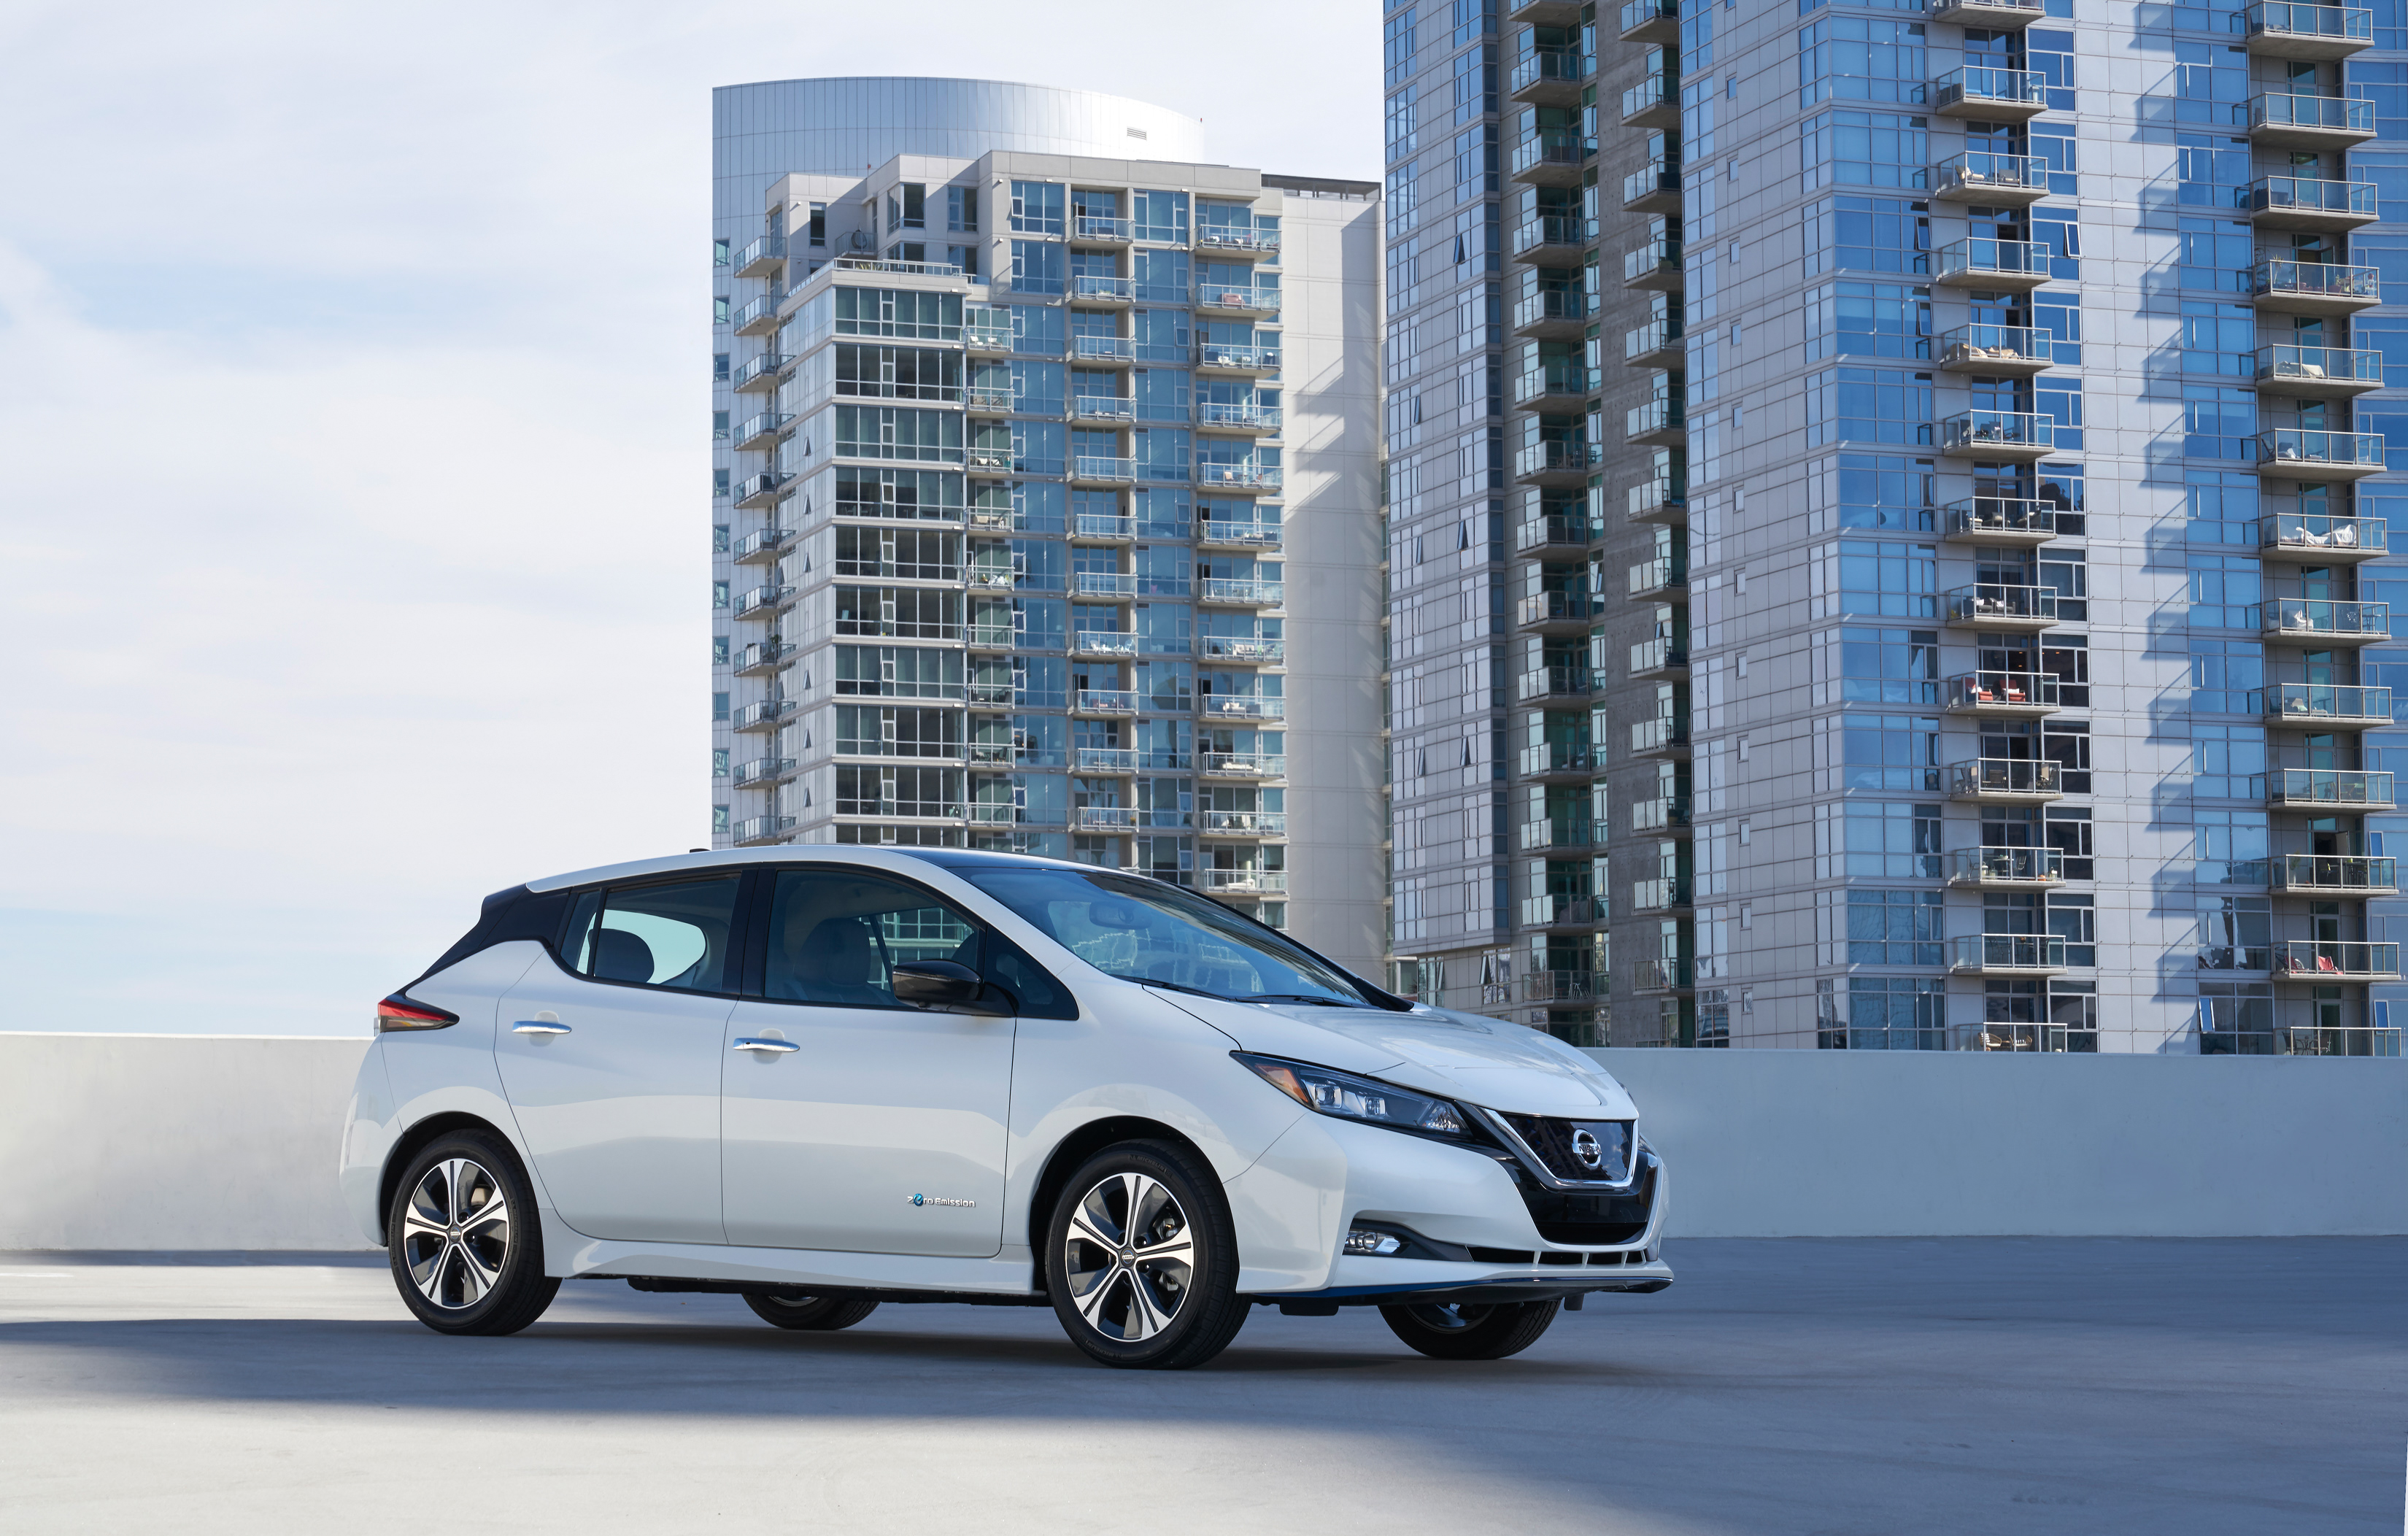 /_default_upload_bucket/2019%20Nissan%20LEAF-6-source-source.jpg